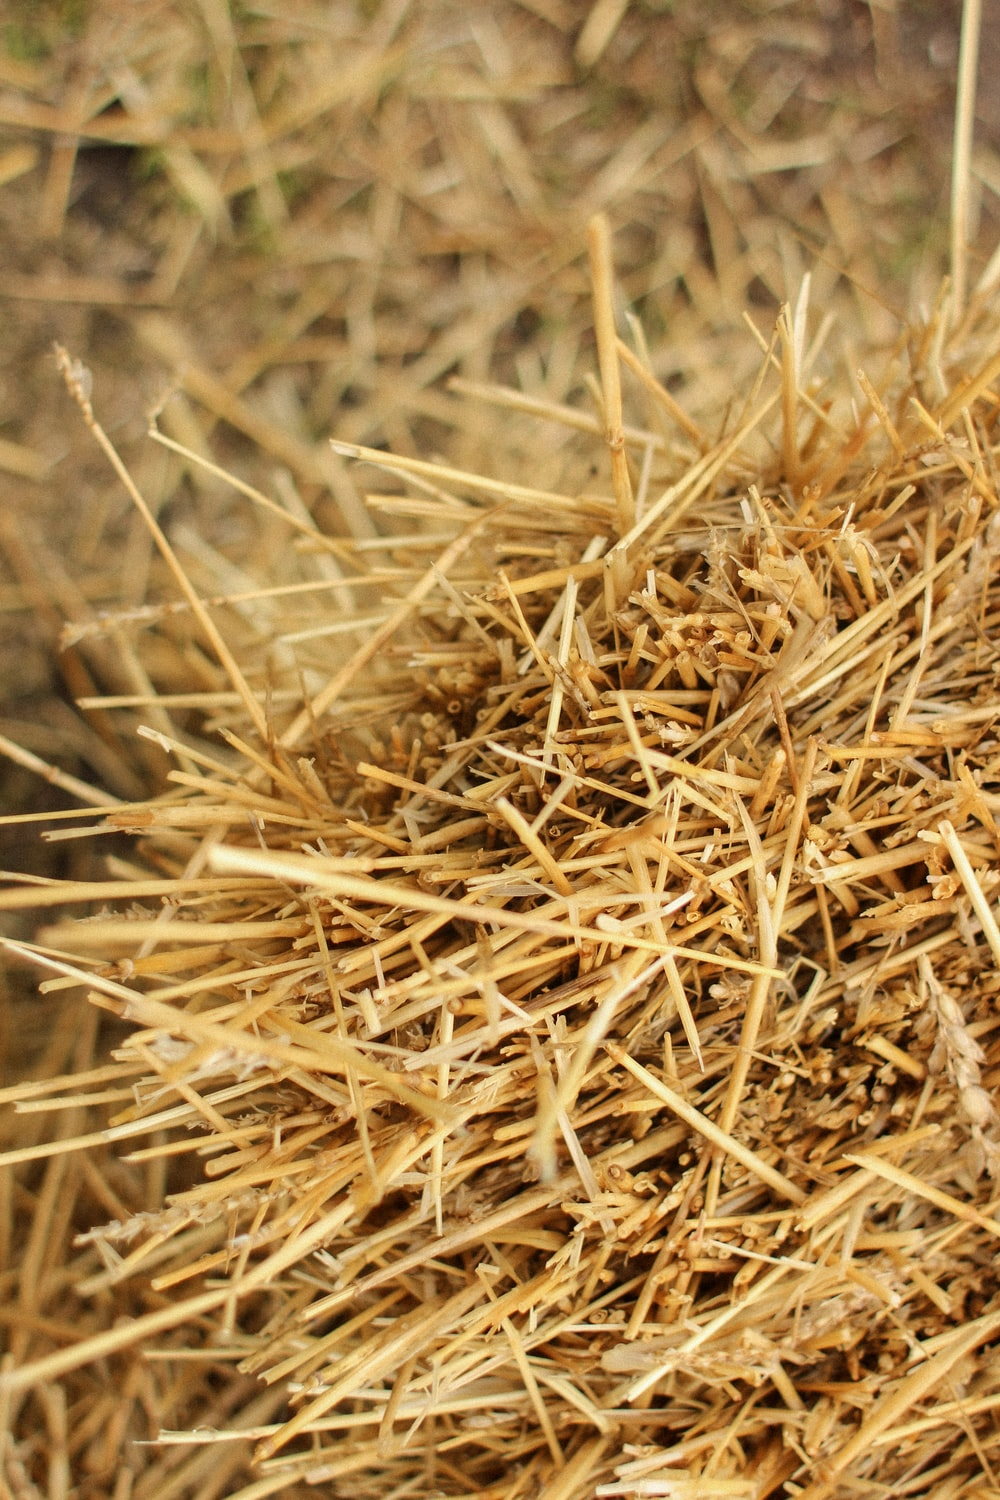 brown dried grass in close up photography